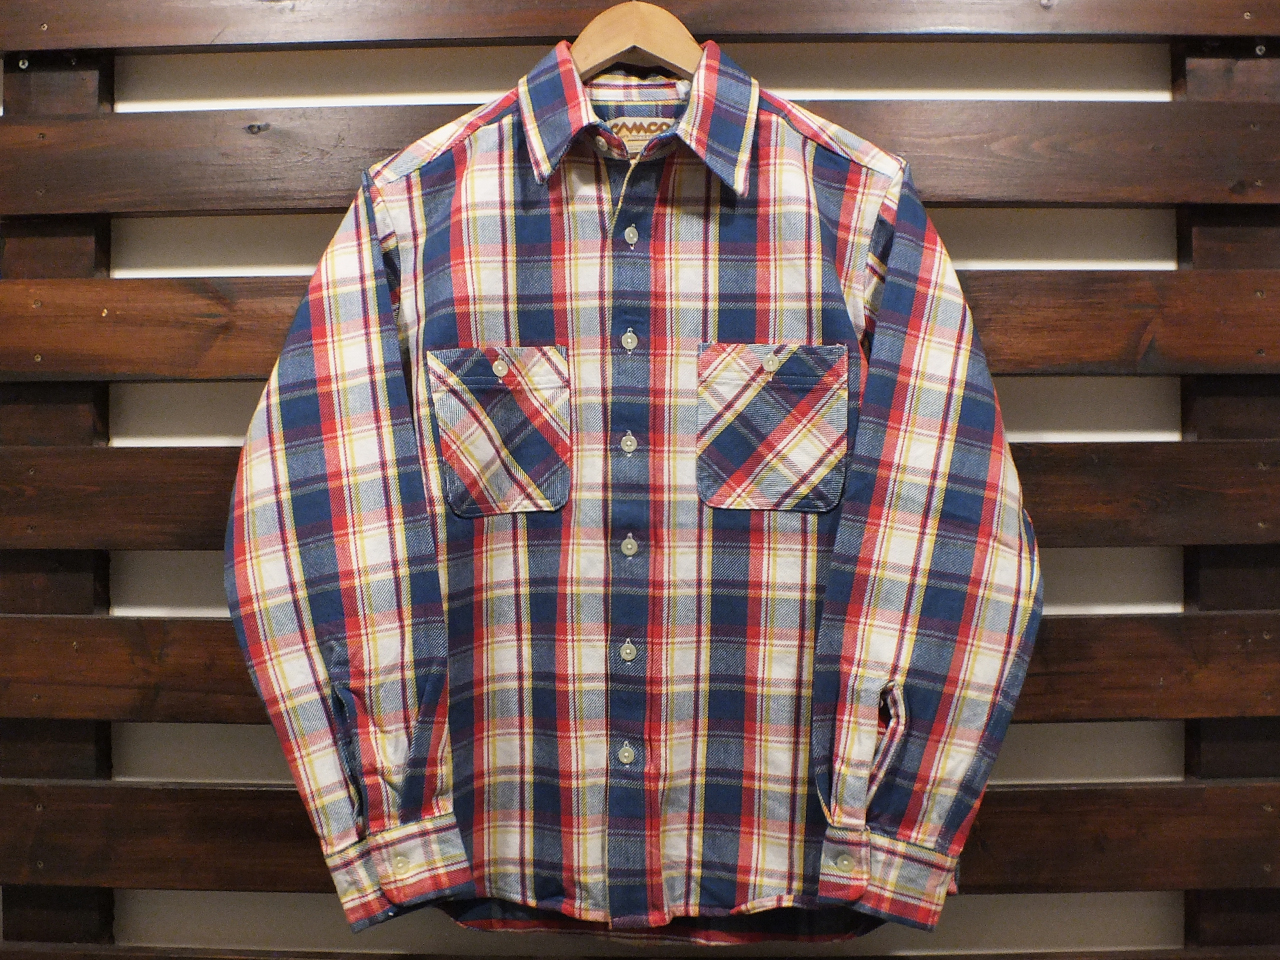 CAMCO HEAVY WEIGHT FLANNEL SHIRTS #21-A